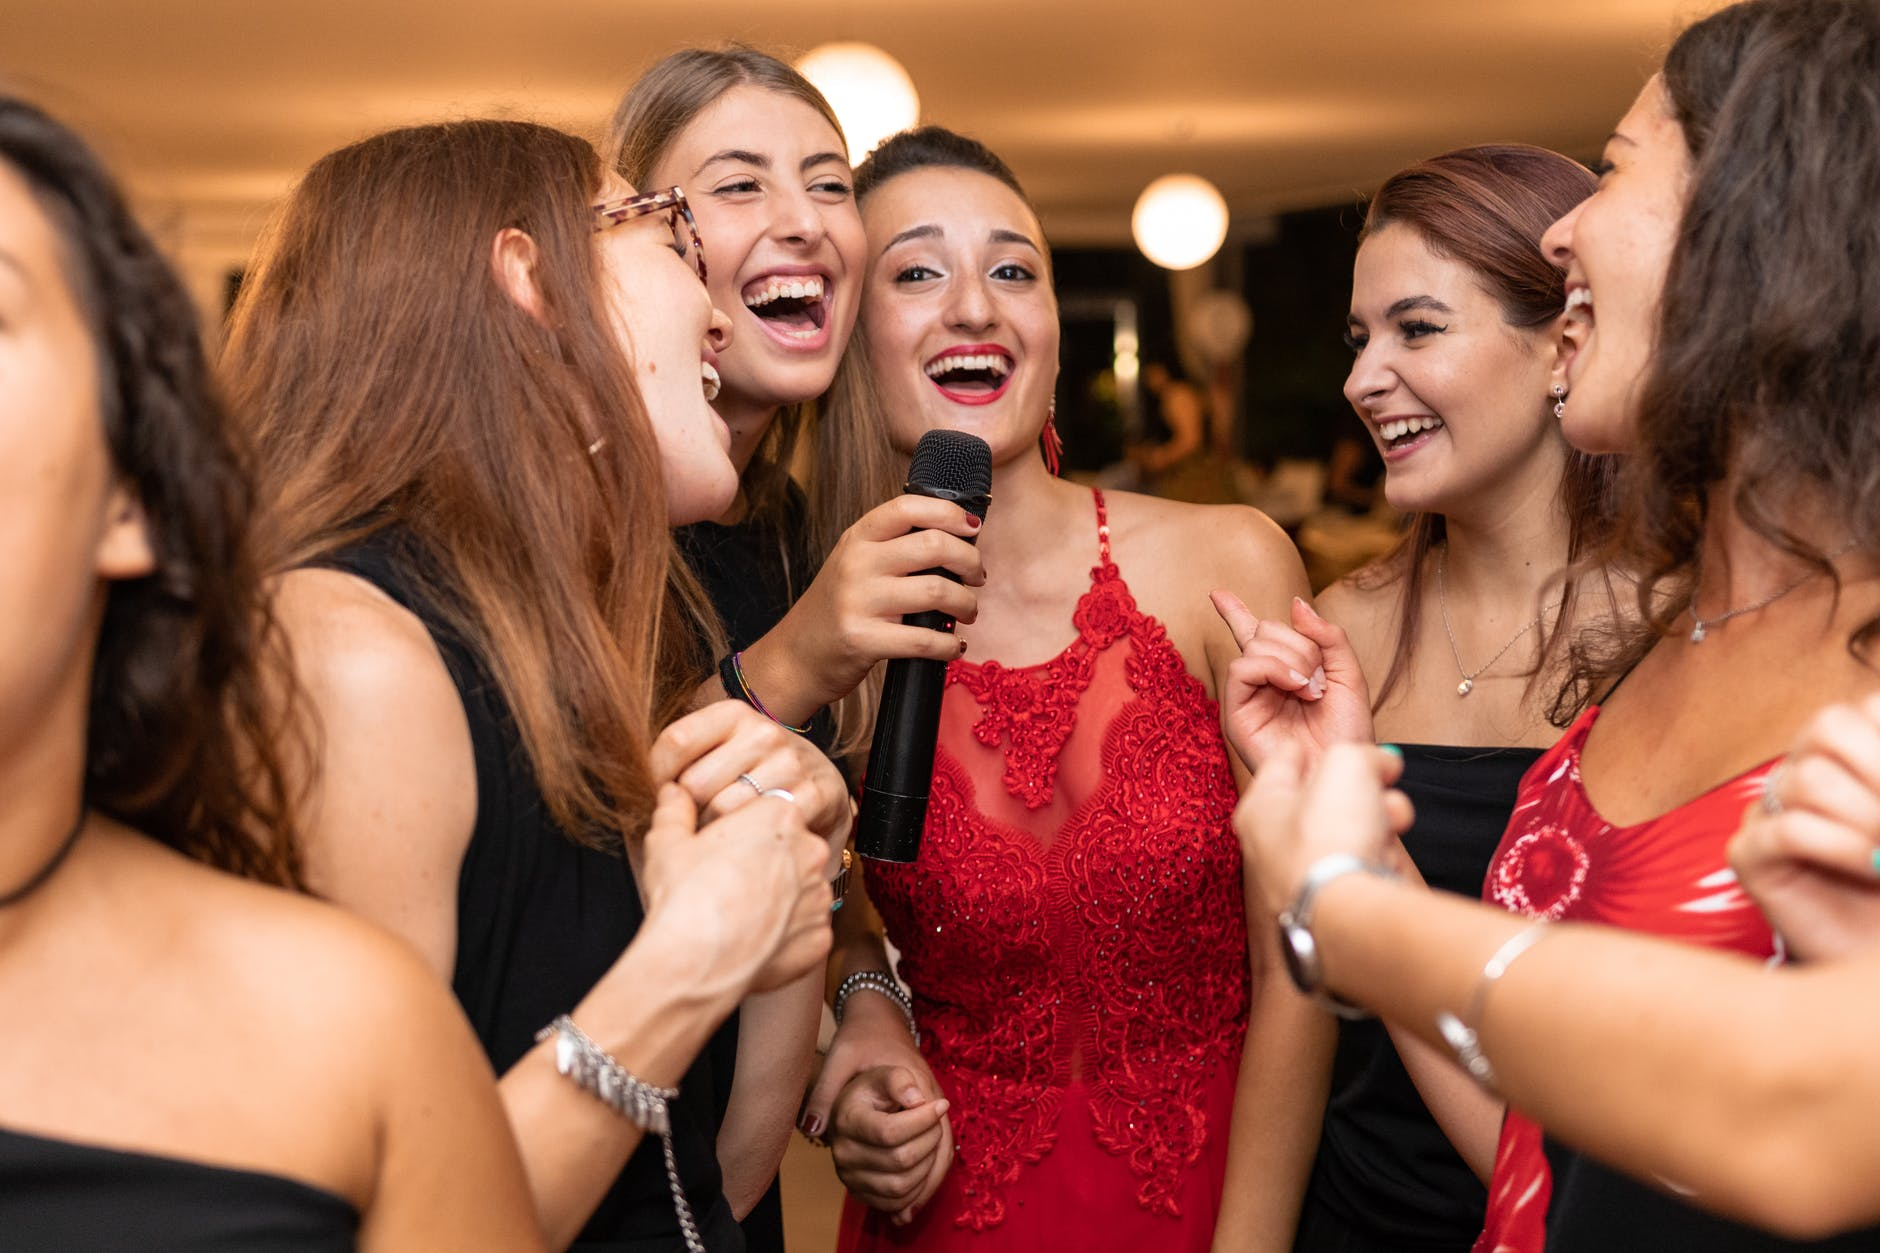 elegant ethnic women with microphone congratulating friend while laughing